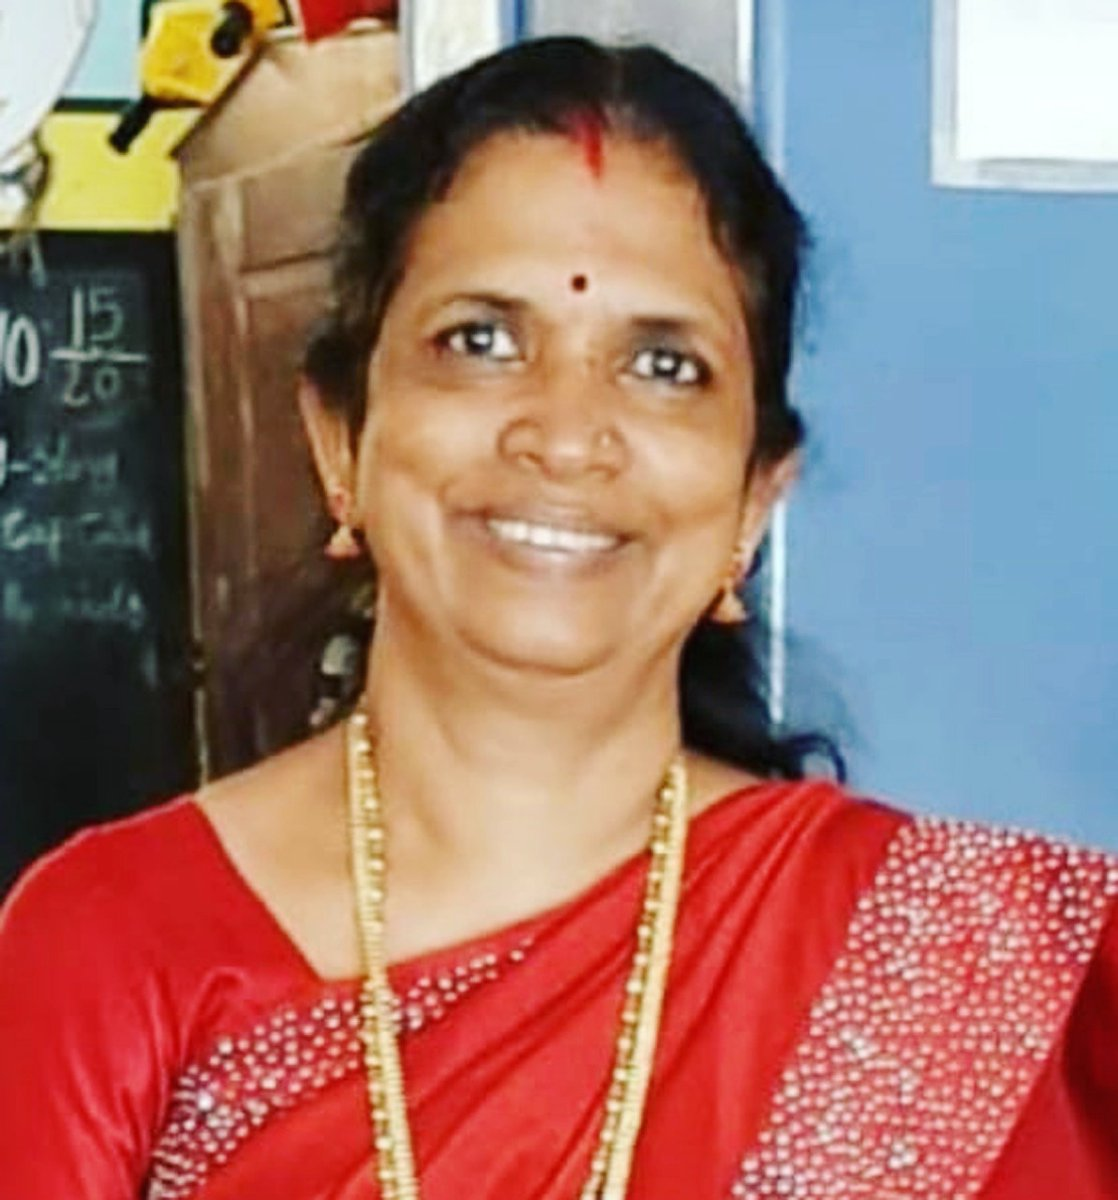 Lali Gopakumar (50) from Aniyoor, Chembazhanthy saves 5 lives. Deepest condolences and gratitude to the relatives of Lali Gopakumar who agreed to donate her organs for transplant.This is the fifth organ transplant during the lockdown in the state.